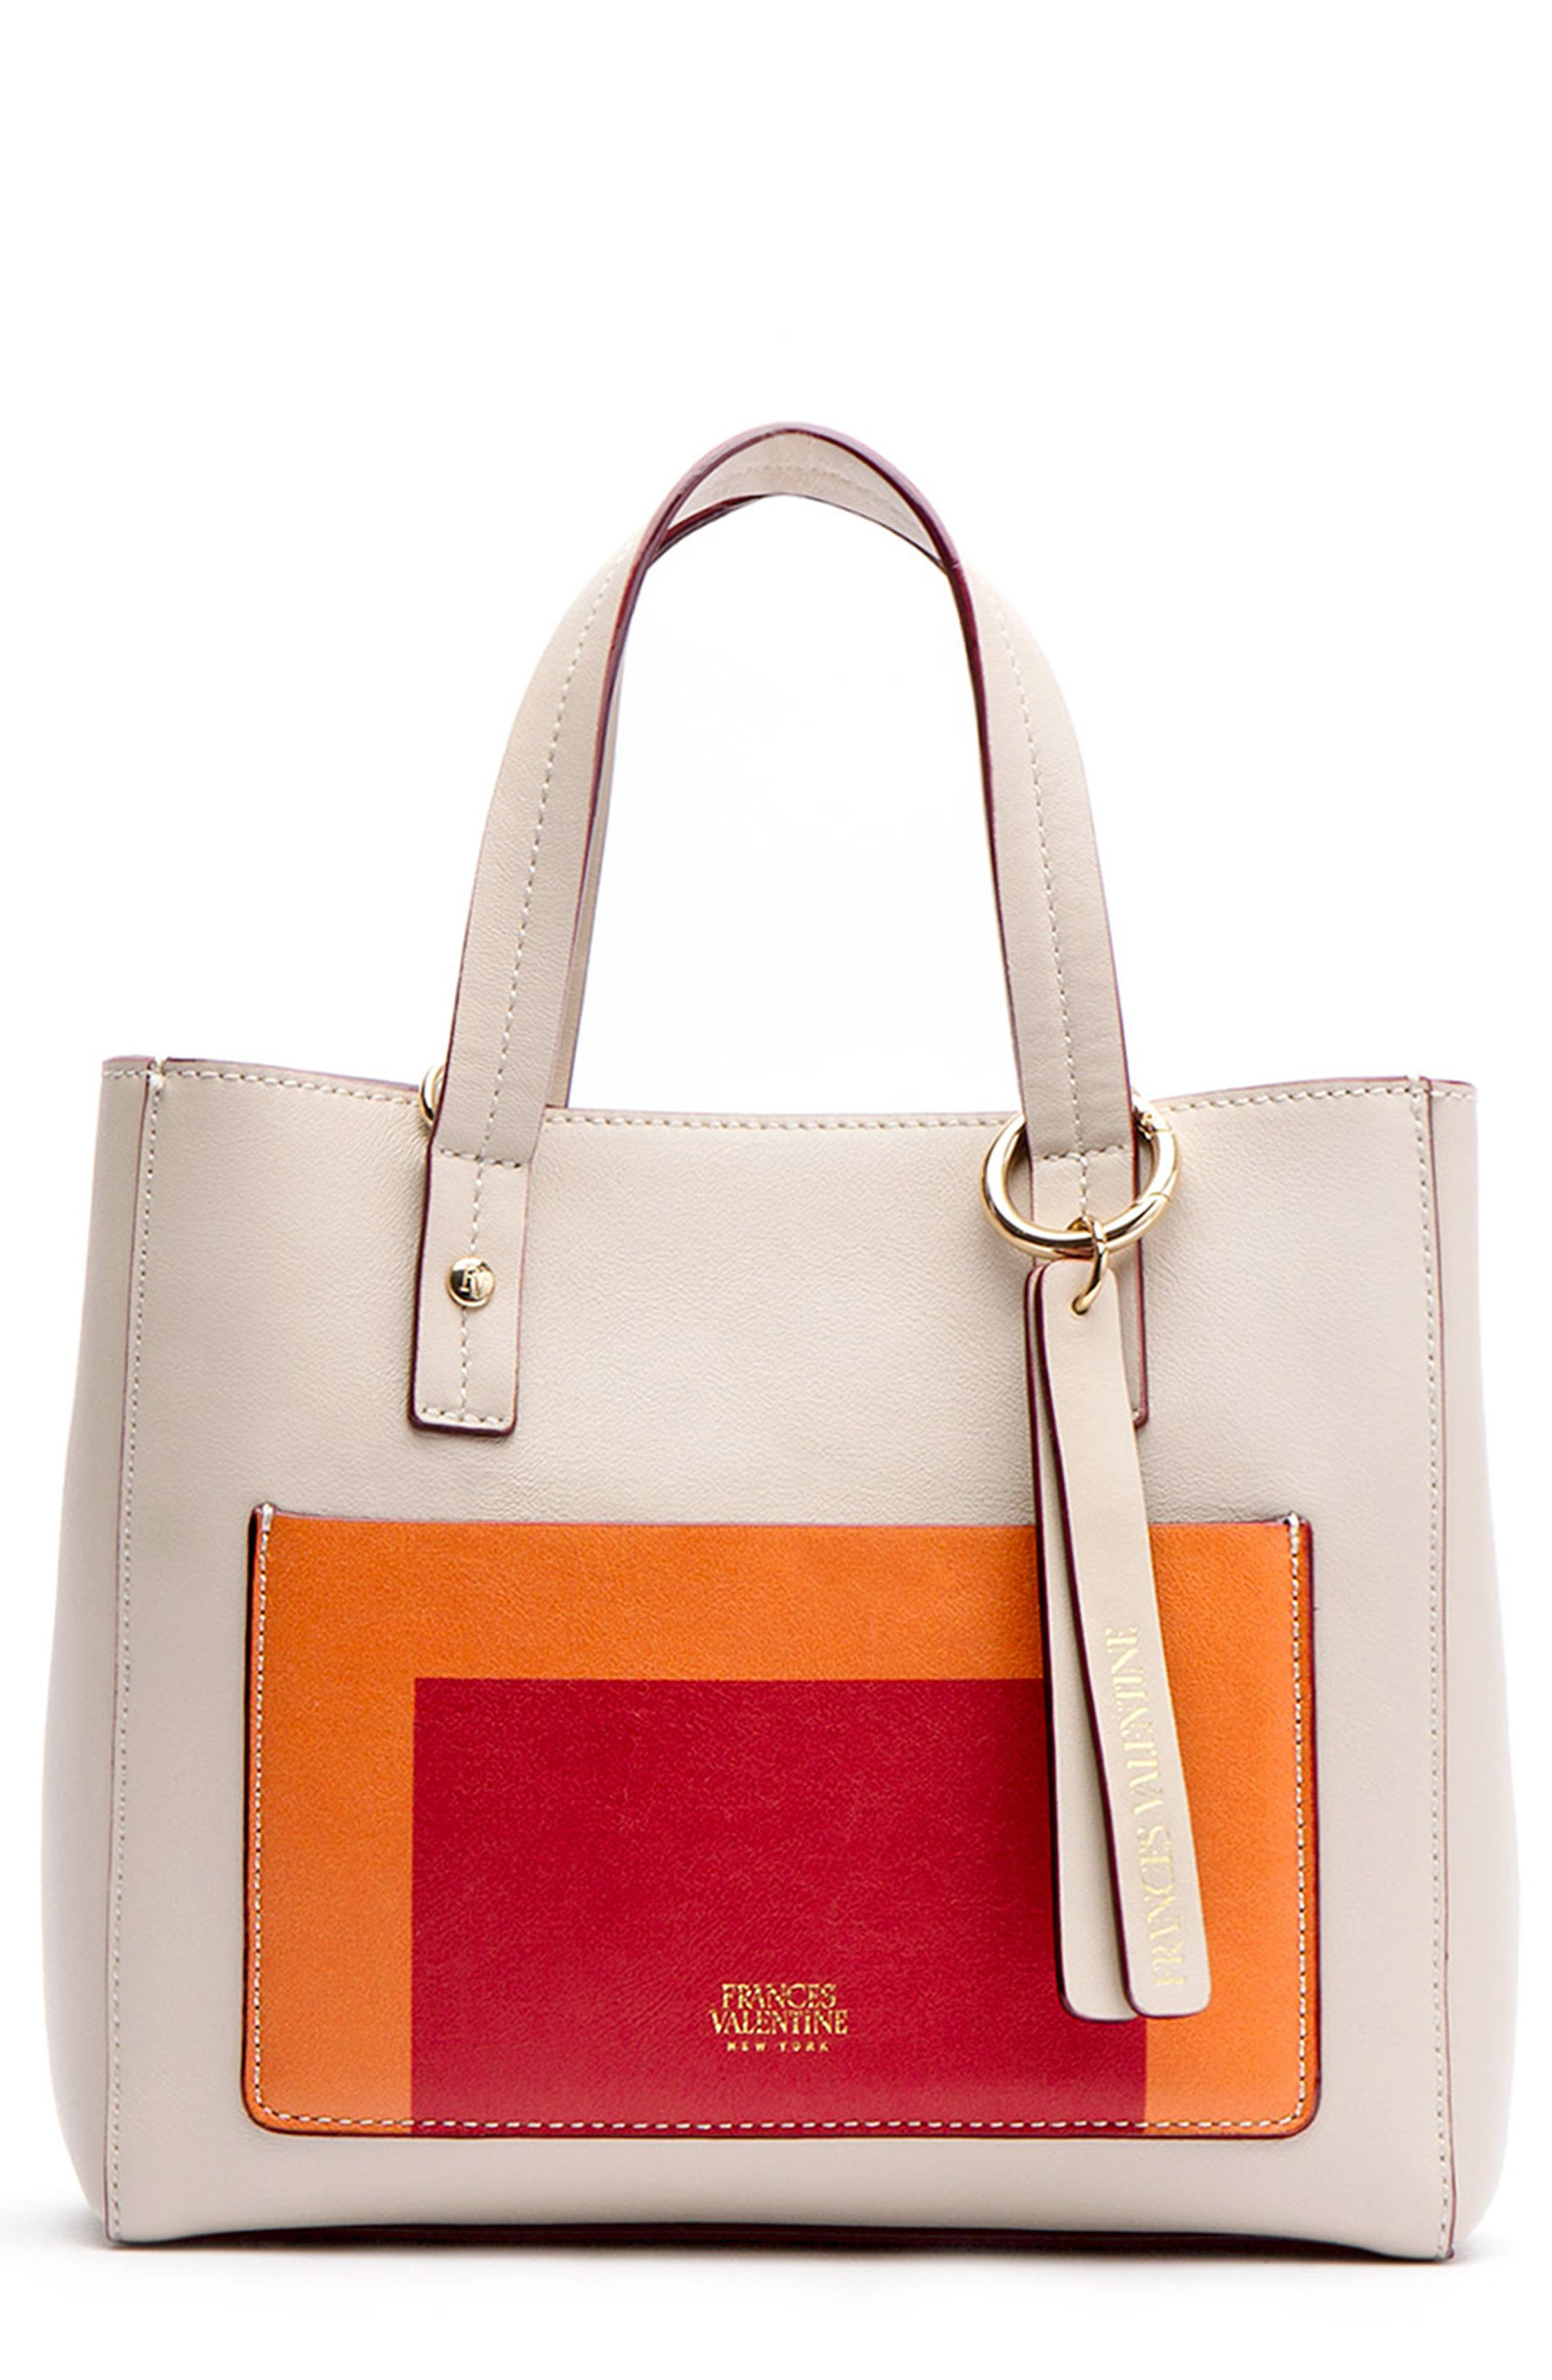 FRANCES VALENTINE Small Chloe Leather Satchel - Beige in Oyster/ Multi